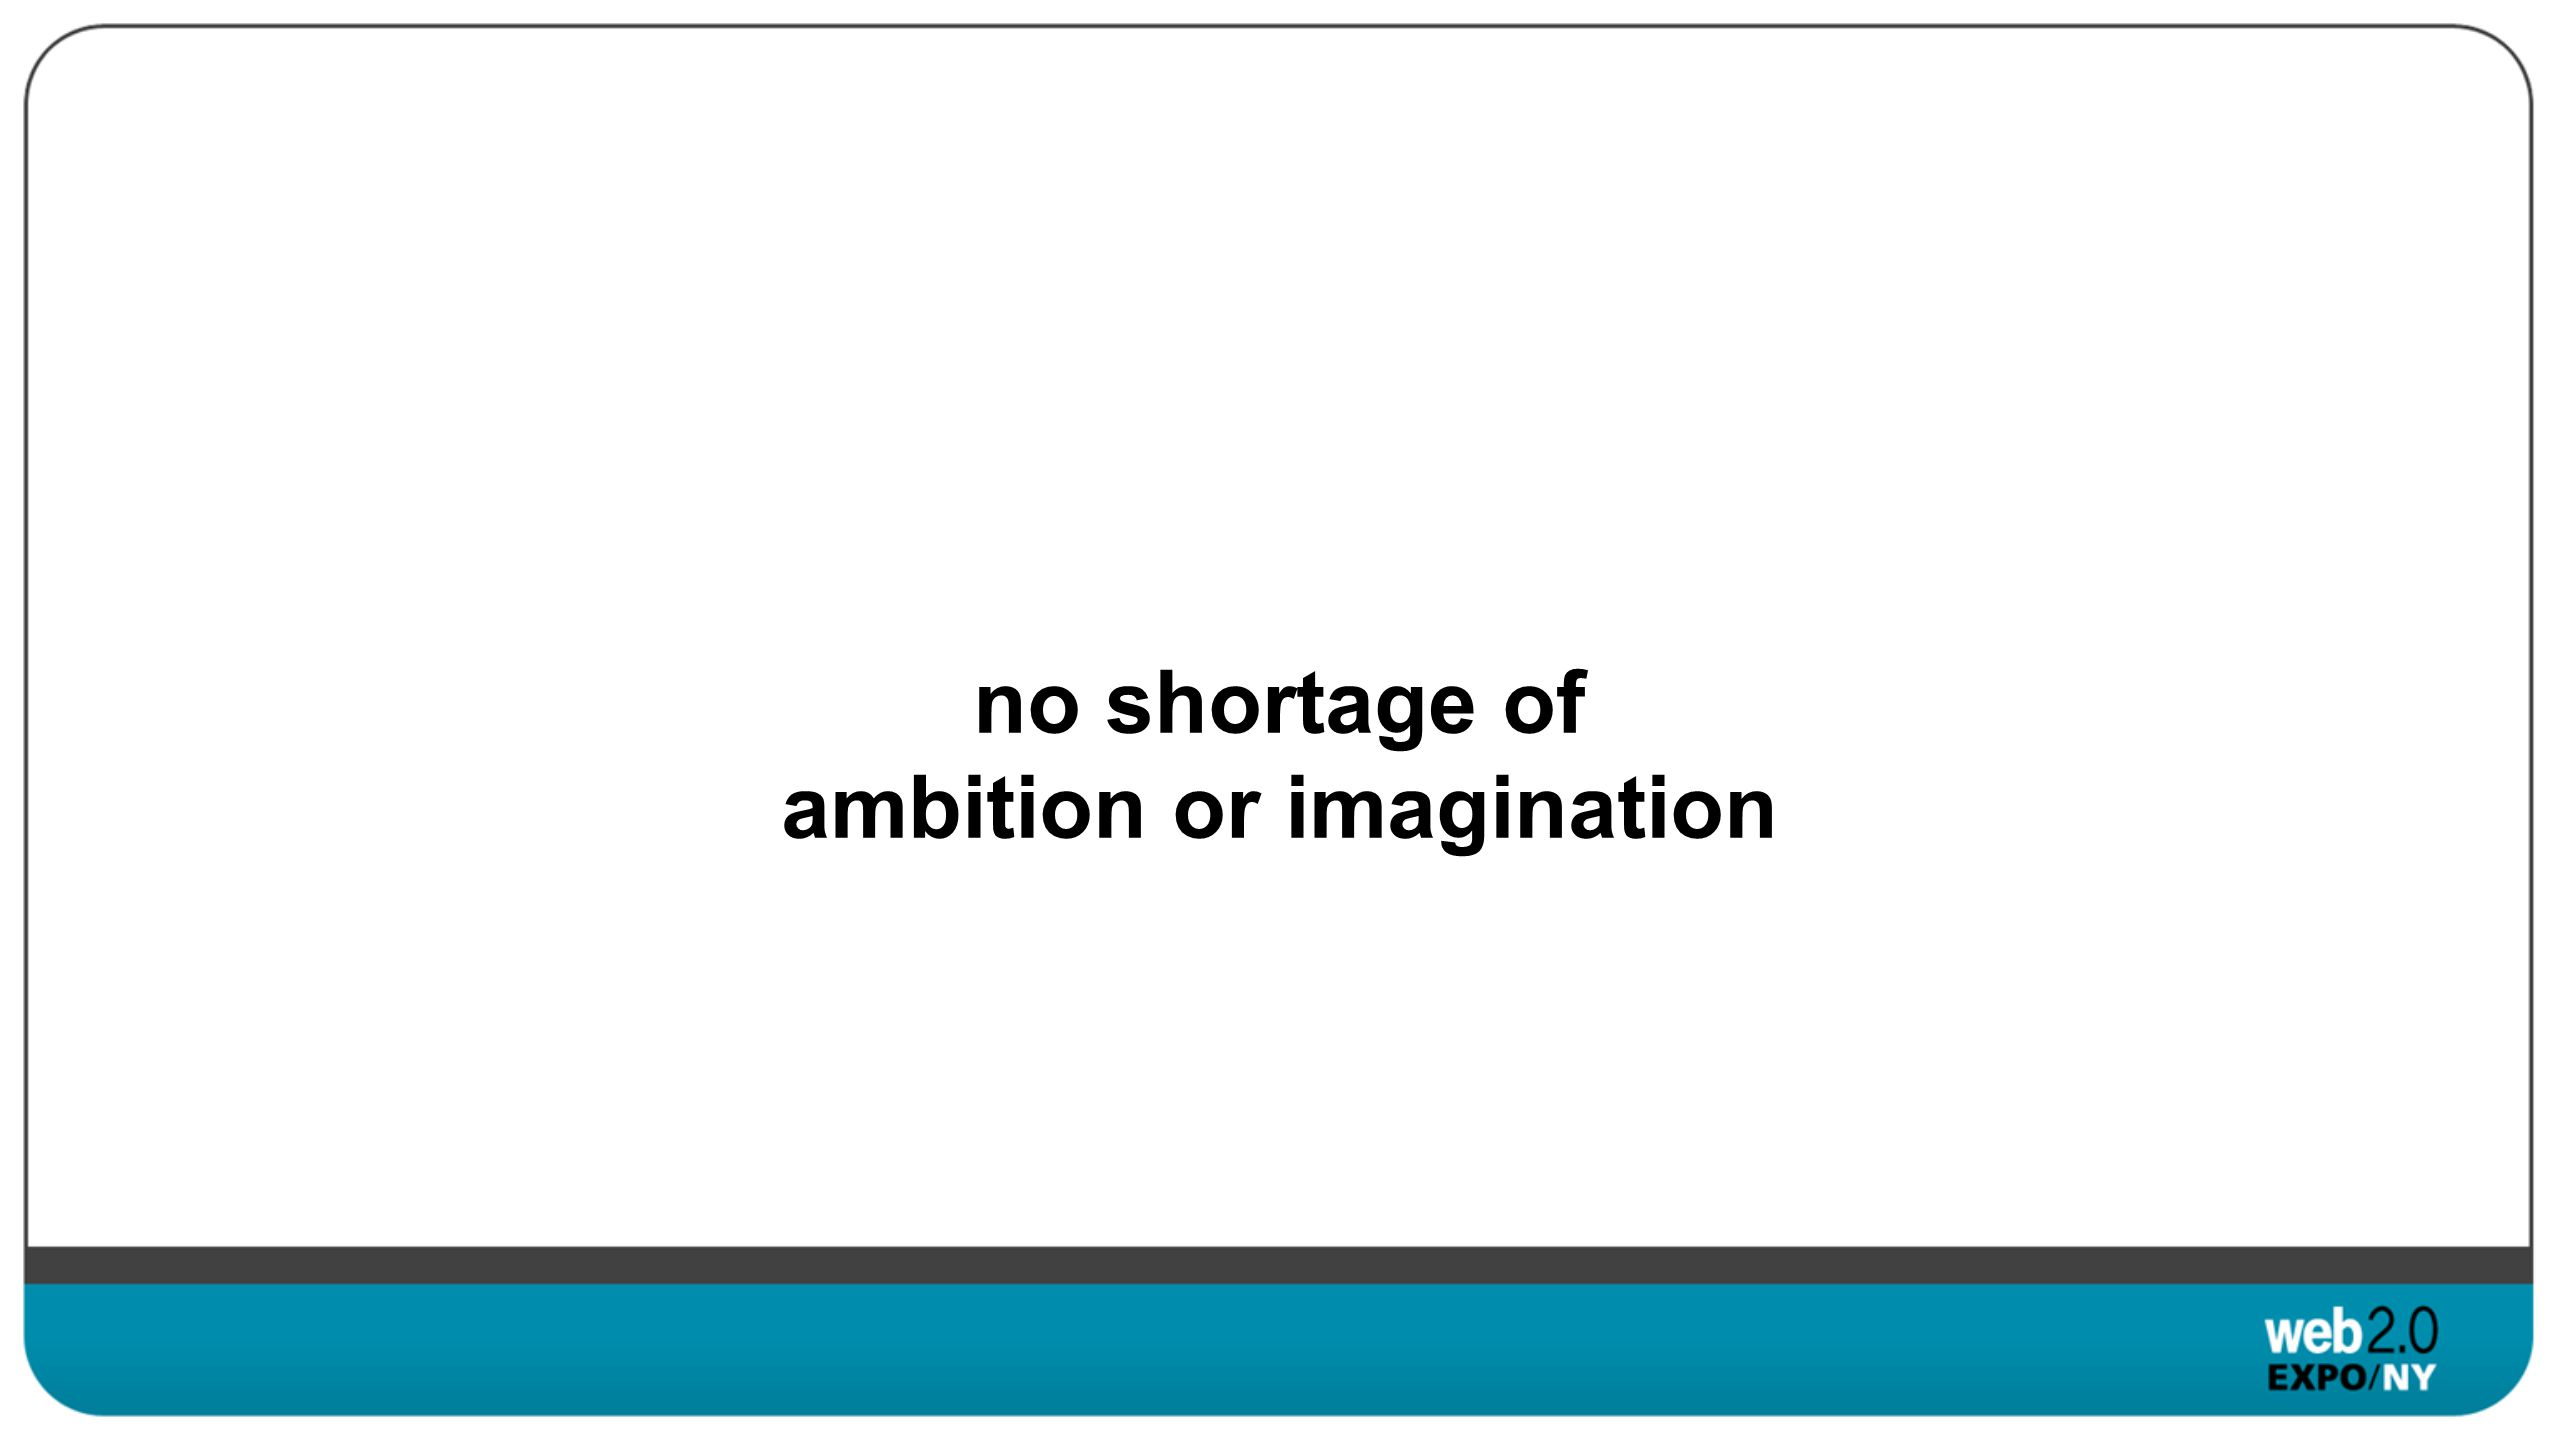 no shortage of ambition or imagination